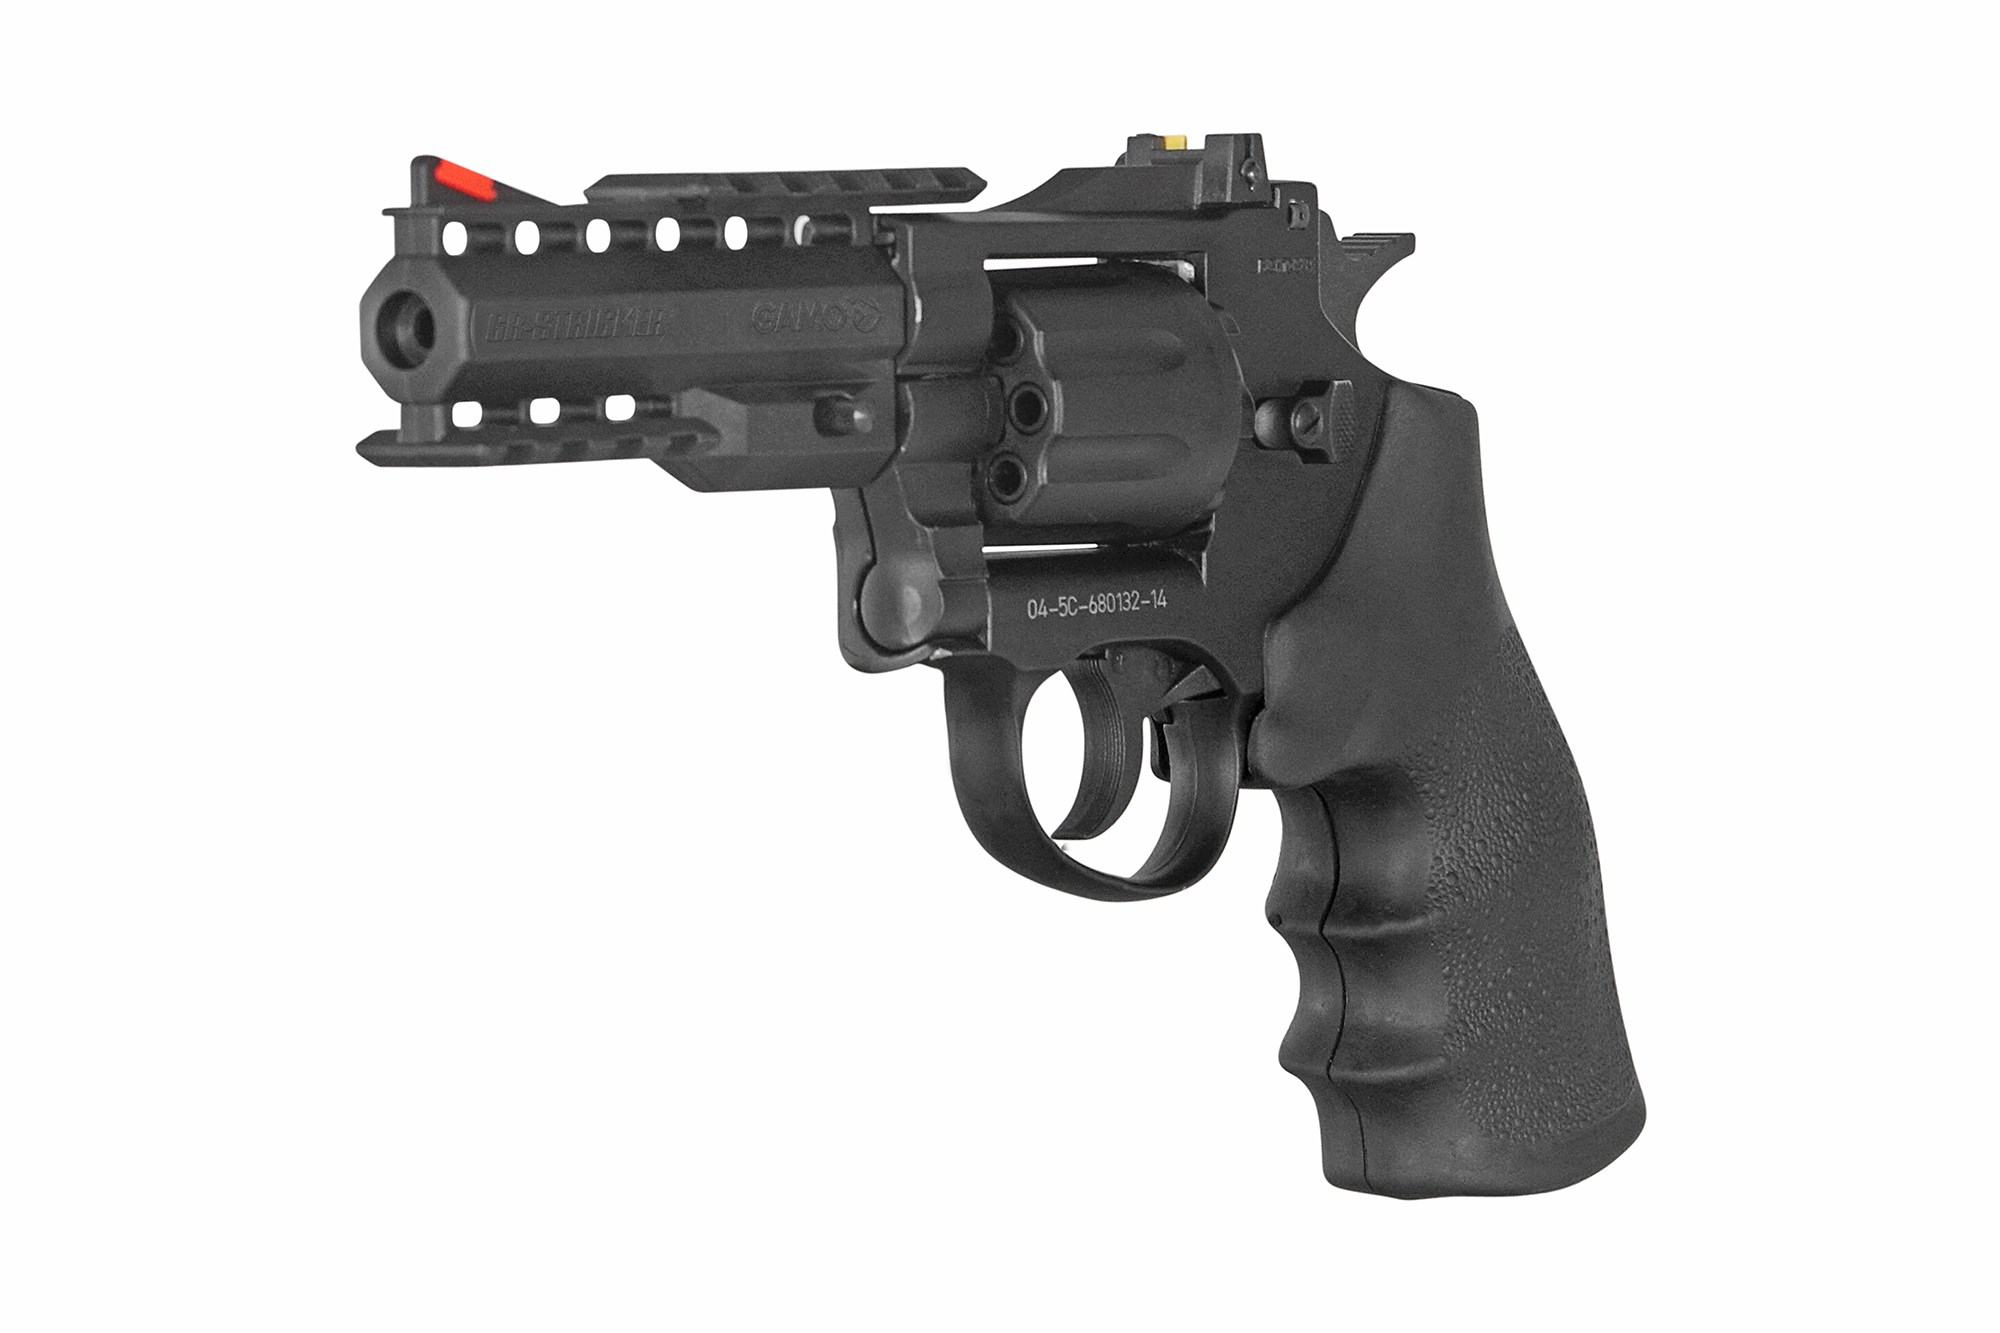 Nuovo revolver a CO² GAMO GR-Striker